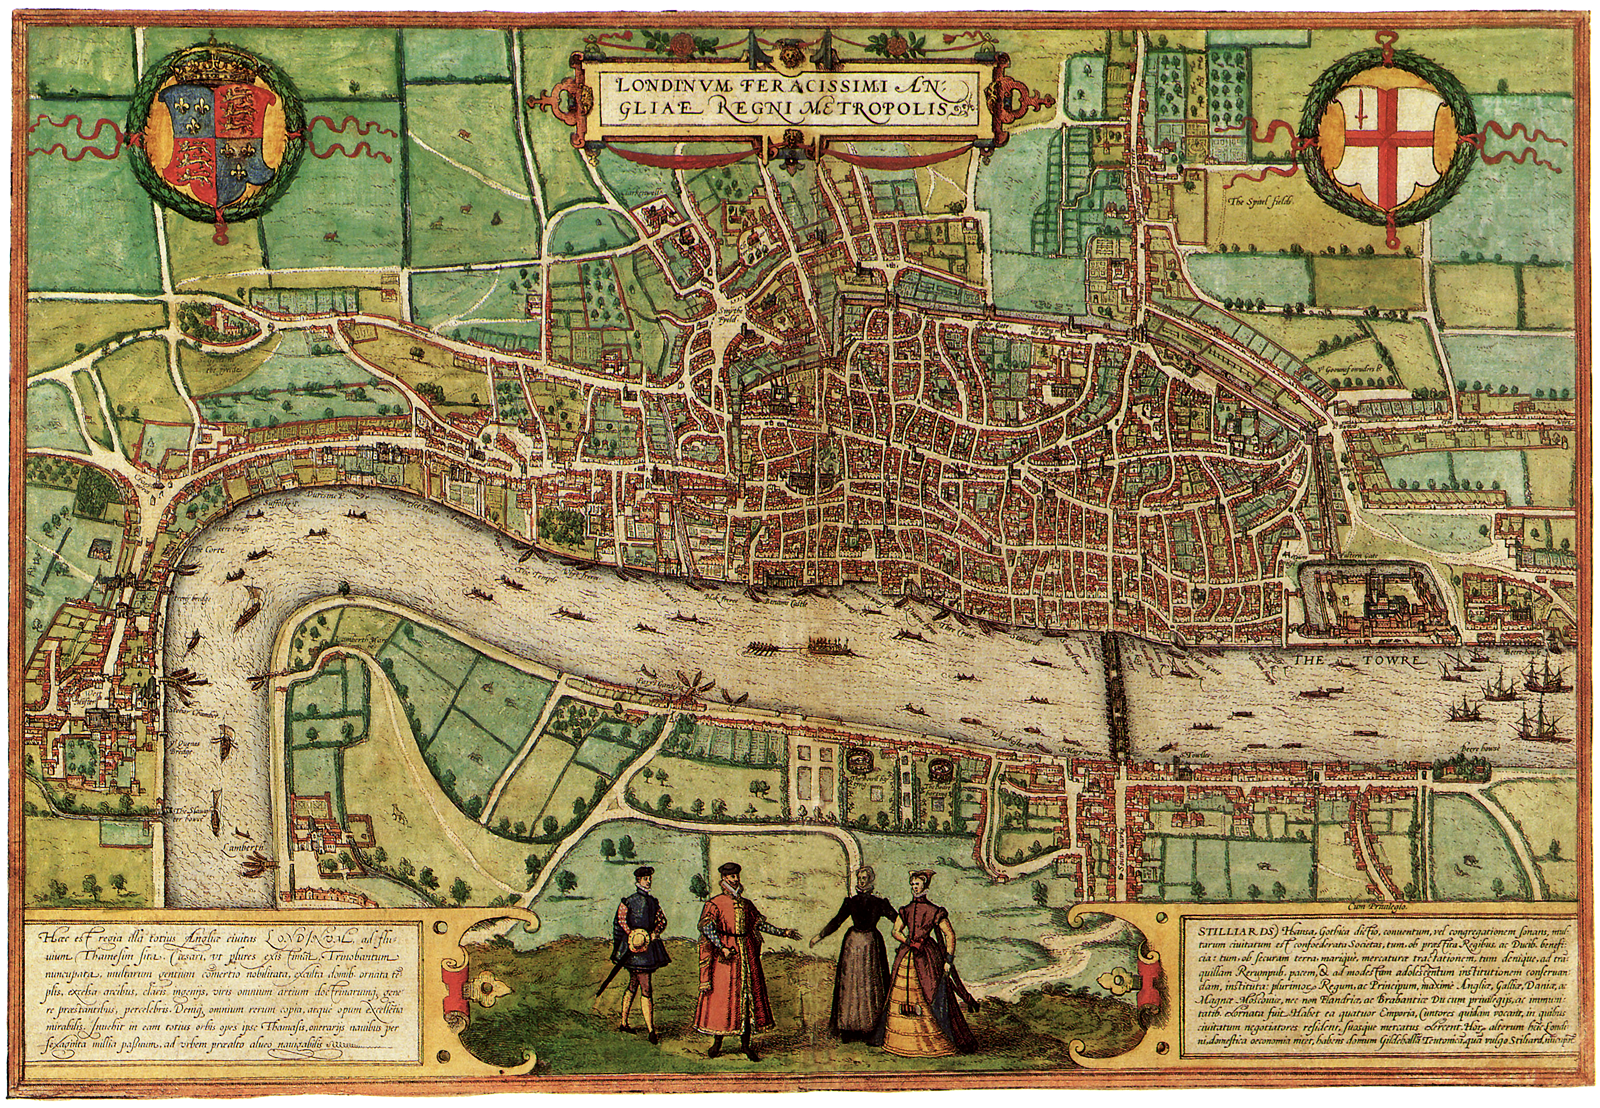 London, 16th century | Antique and/or Cool Maps | Pinterest